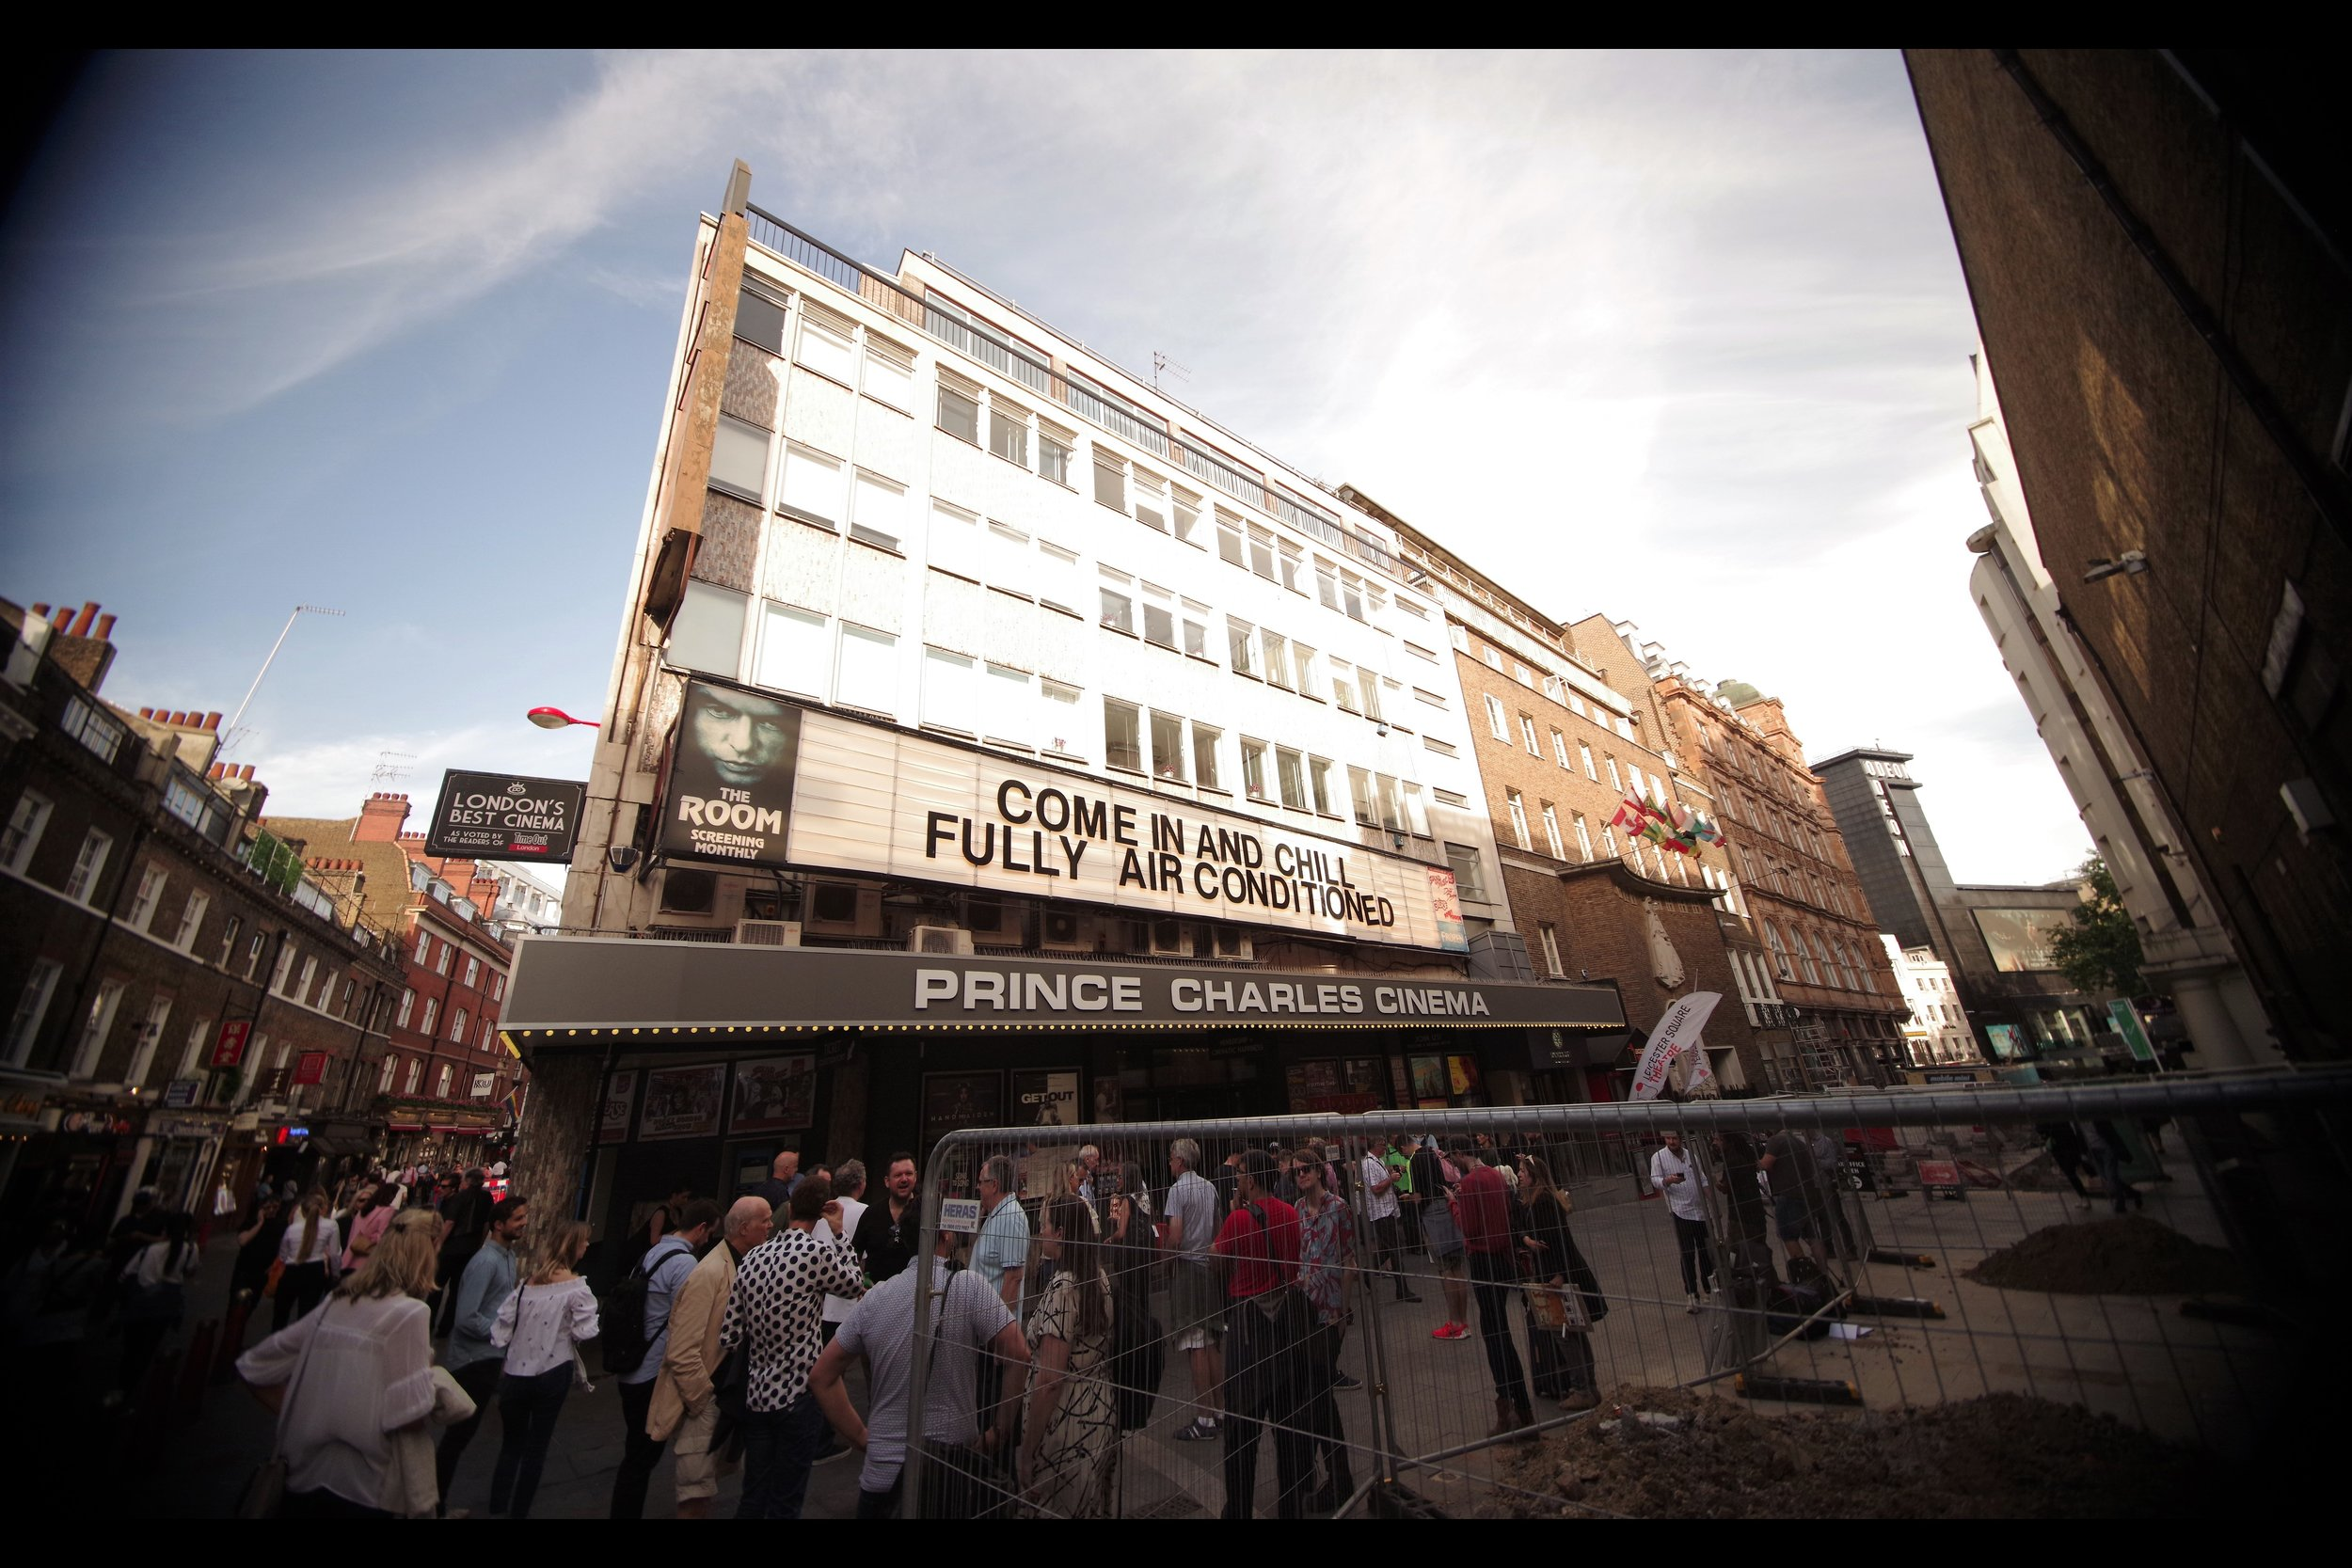 Once again, much like the premiere for Cain Hill, the Prince Charles Cinema has startlingly eschewed using its precious marquee space to promote its premieres and concentrated on what's really important.